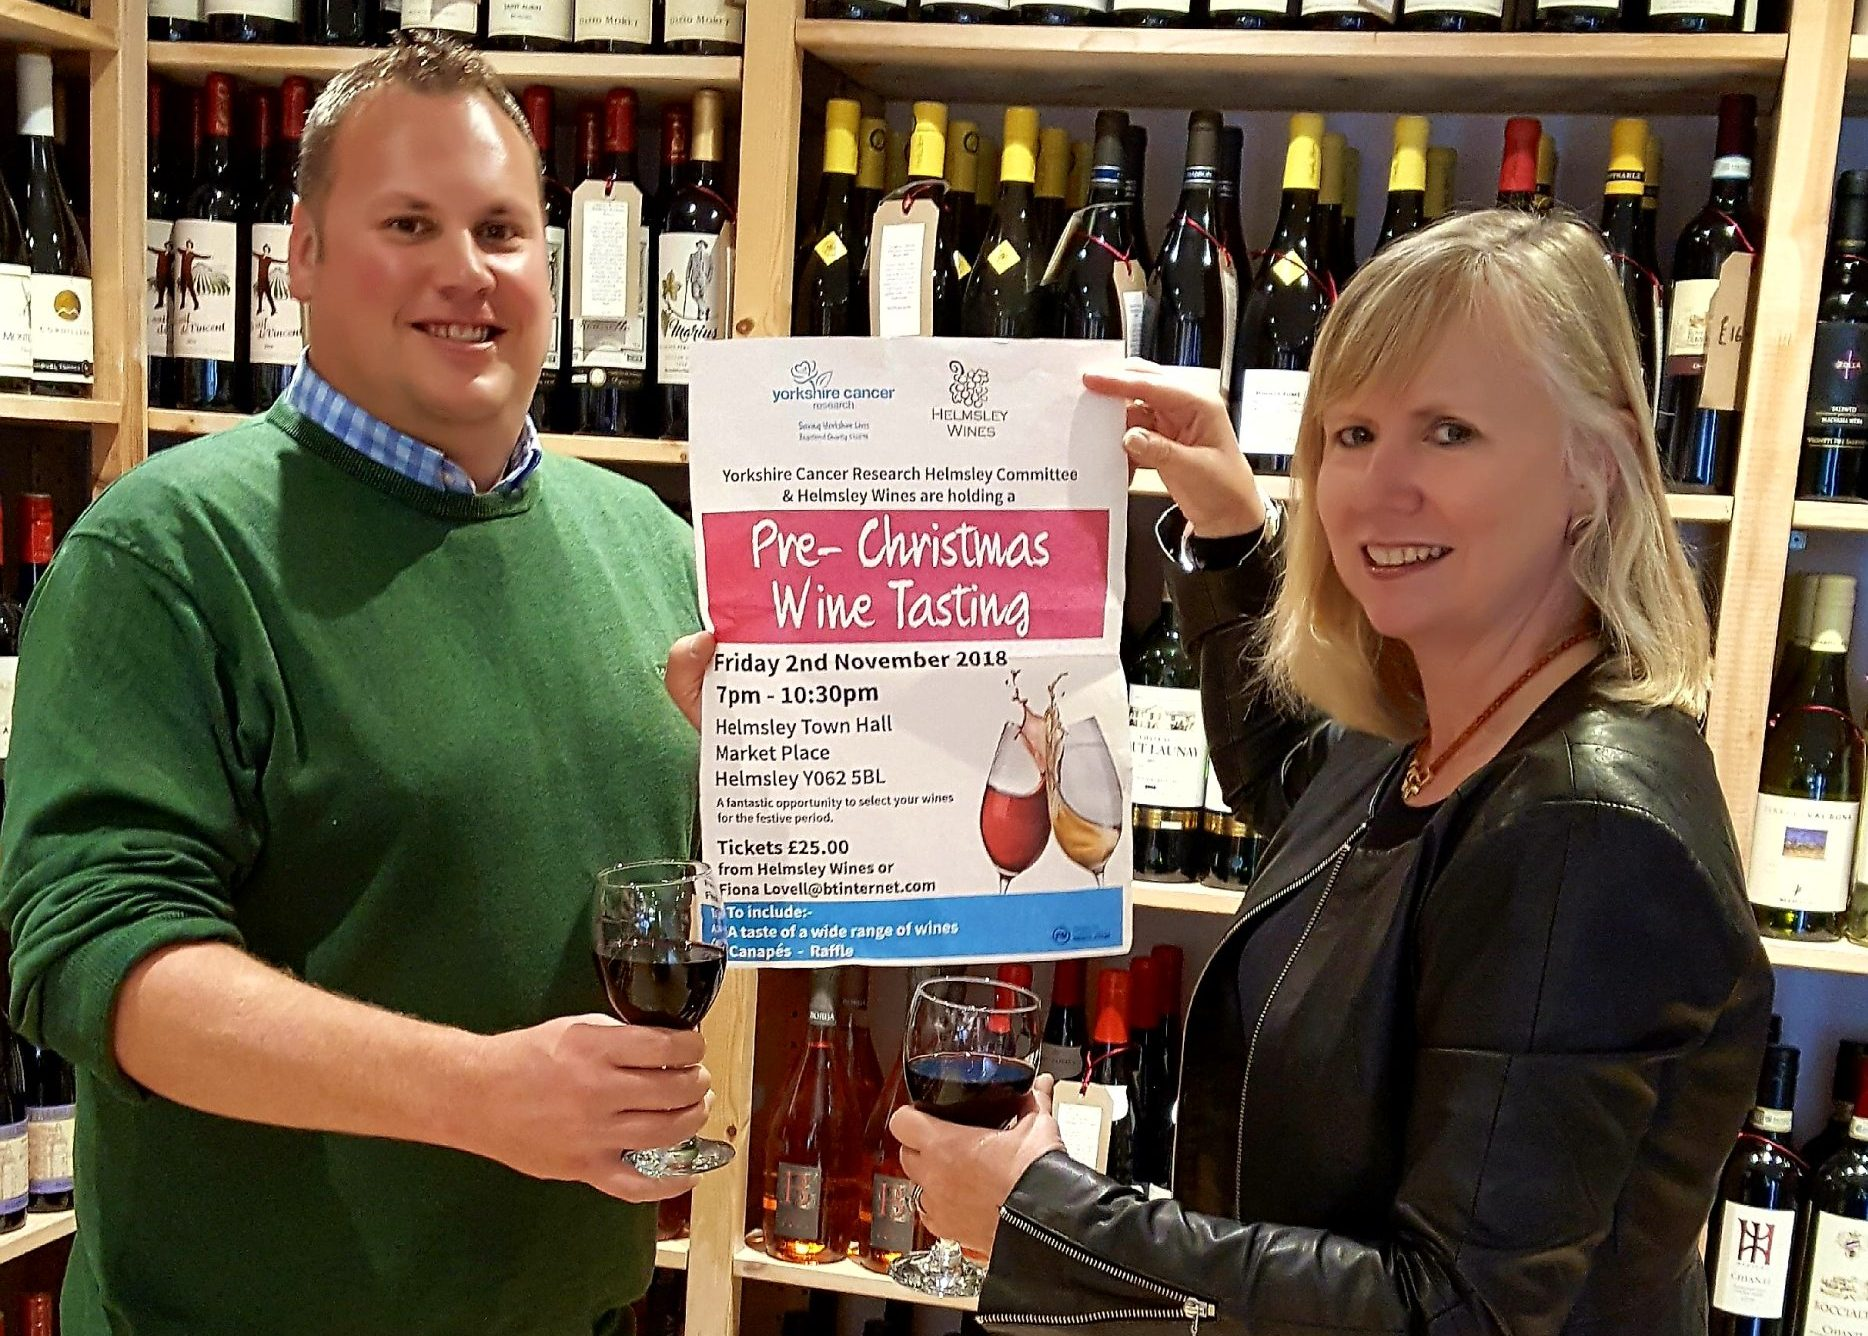 Mal Potter from Helmsley Wines and Fiona Lovell Chair of the Helmsley Committee for Yorkshire Cancer Research